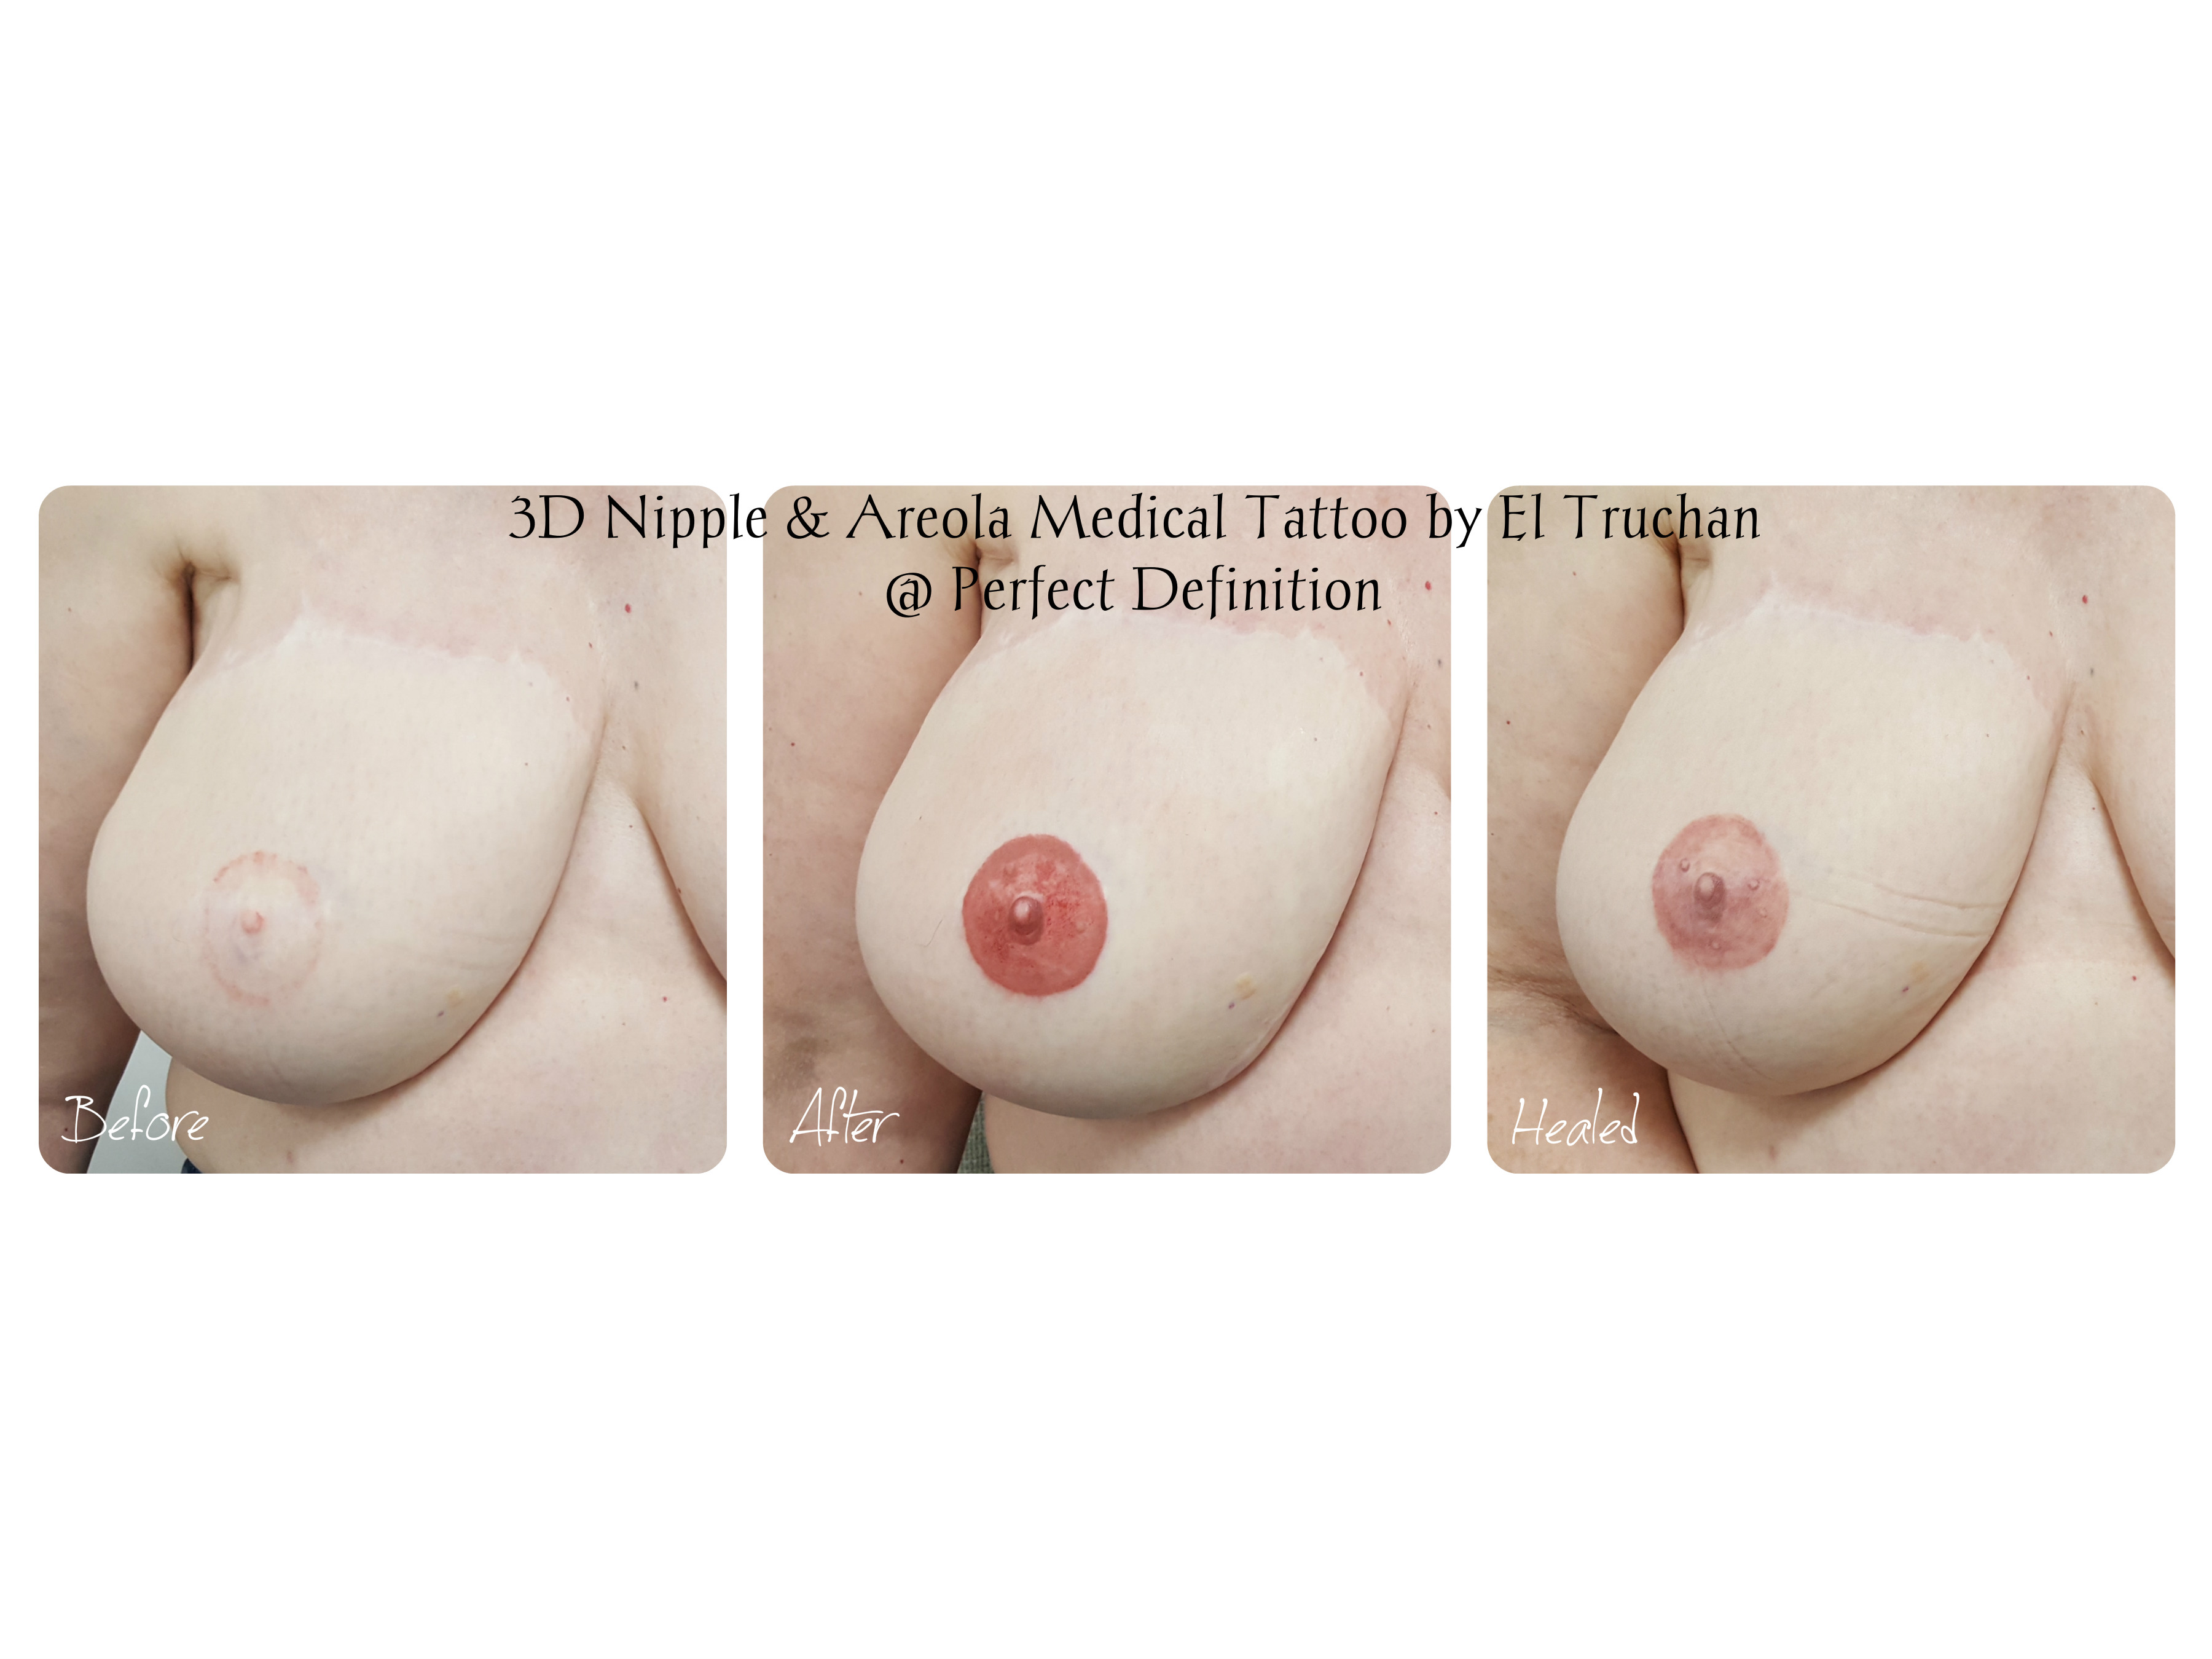 3D Nipple & Areola Medical Tattoo by El Truchan _ Perfect Definition